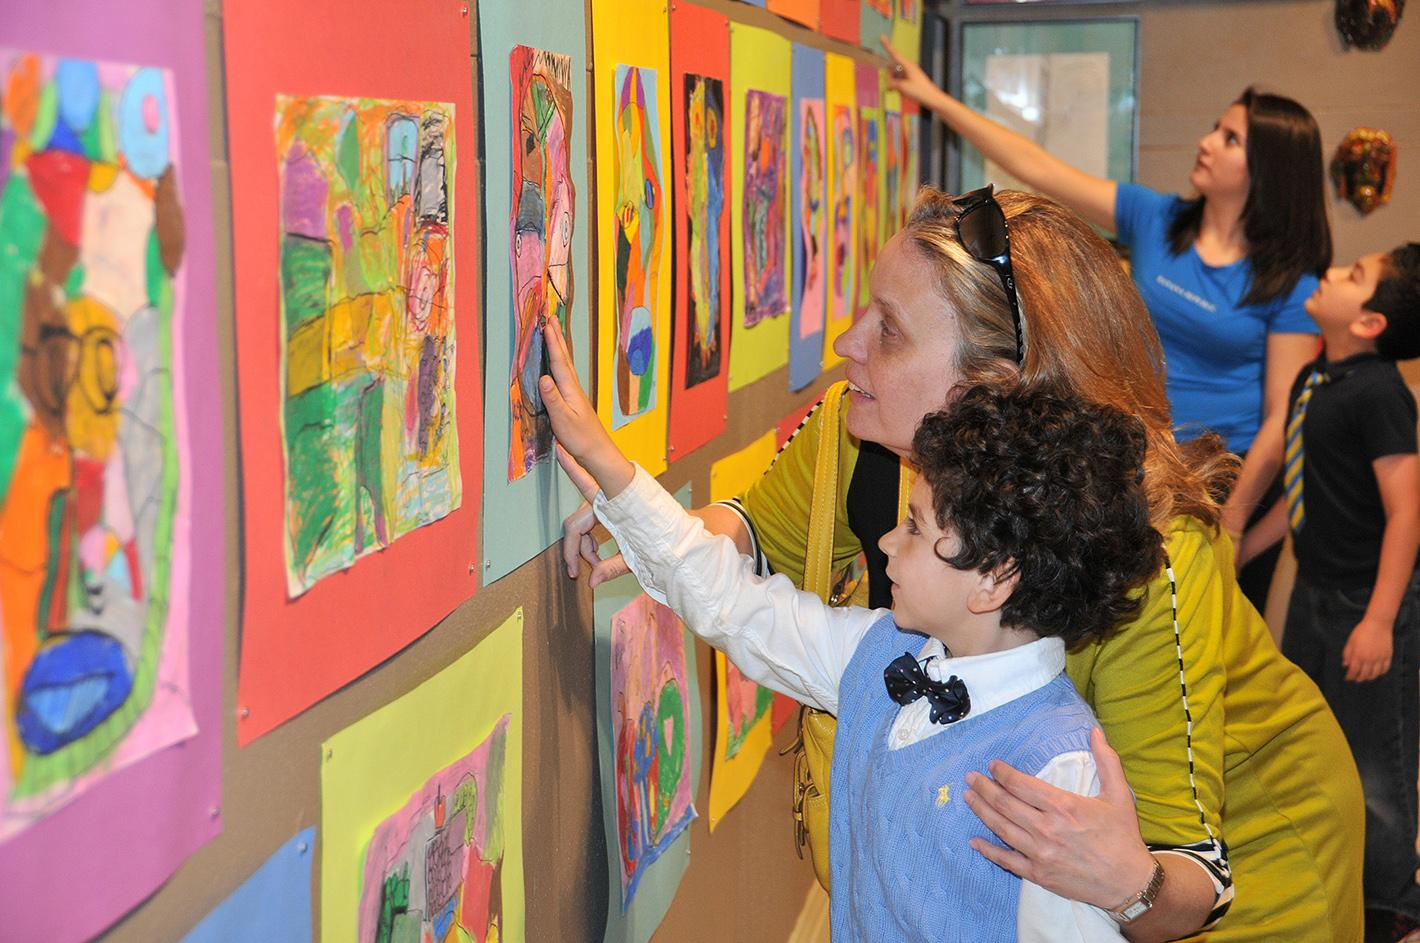 A young artist views his work in the exhibition Exuberance! Kids Make Art about Art curated by Sammie Nicely. The exhibition was in the Reece Museum in 2015.